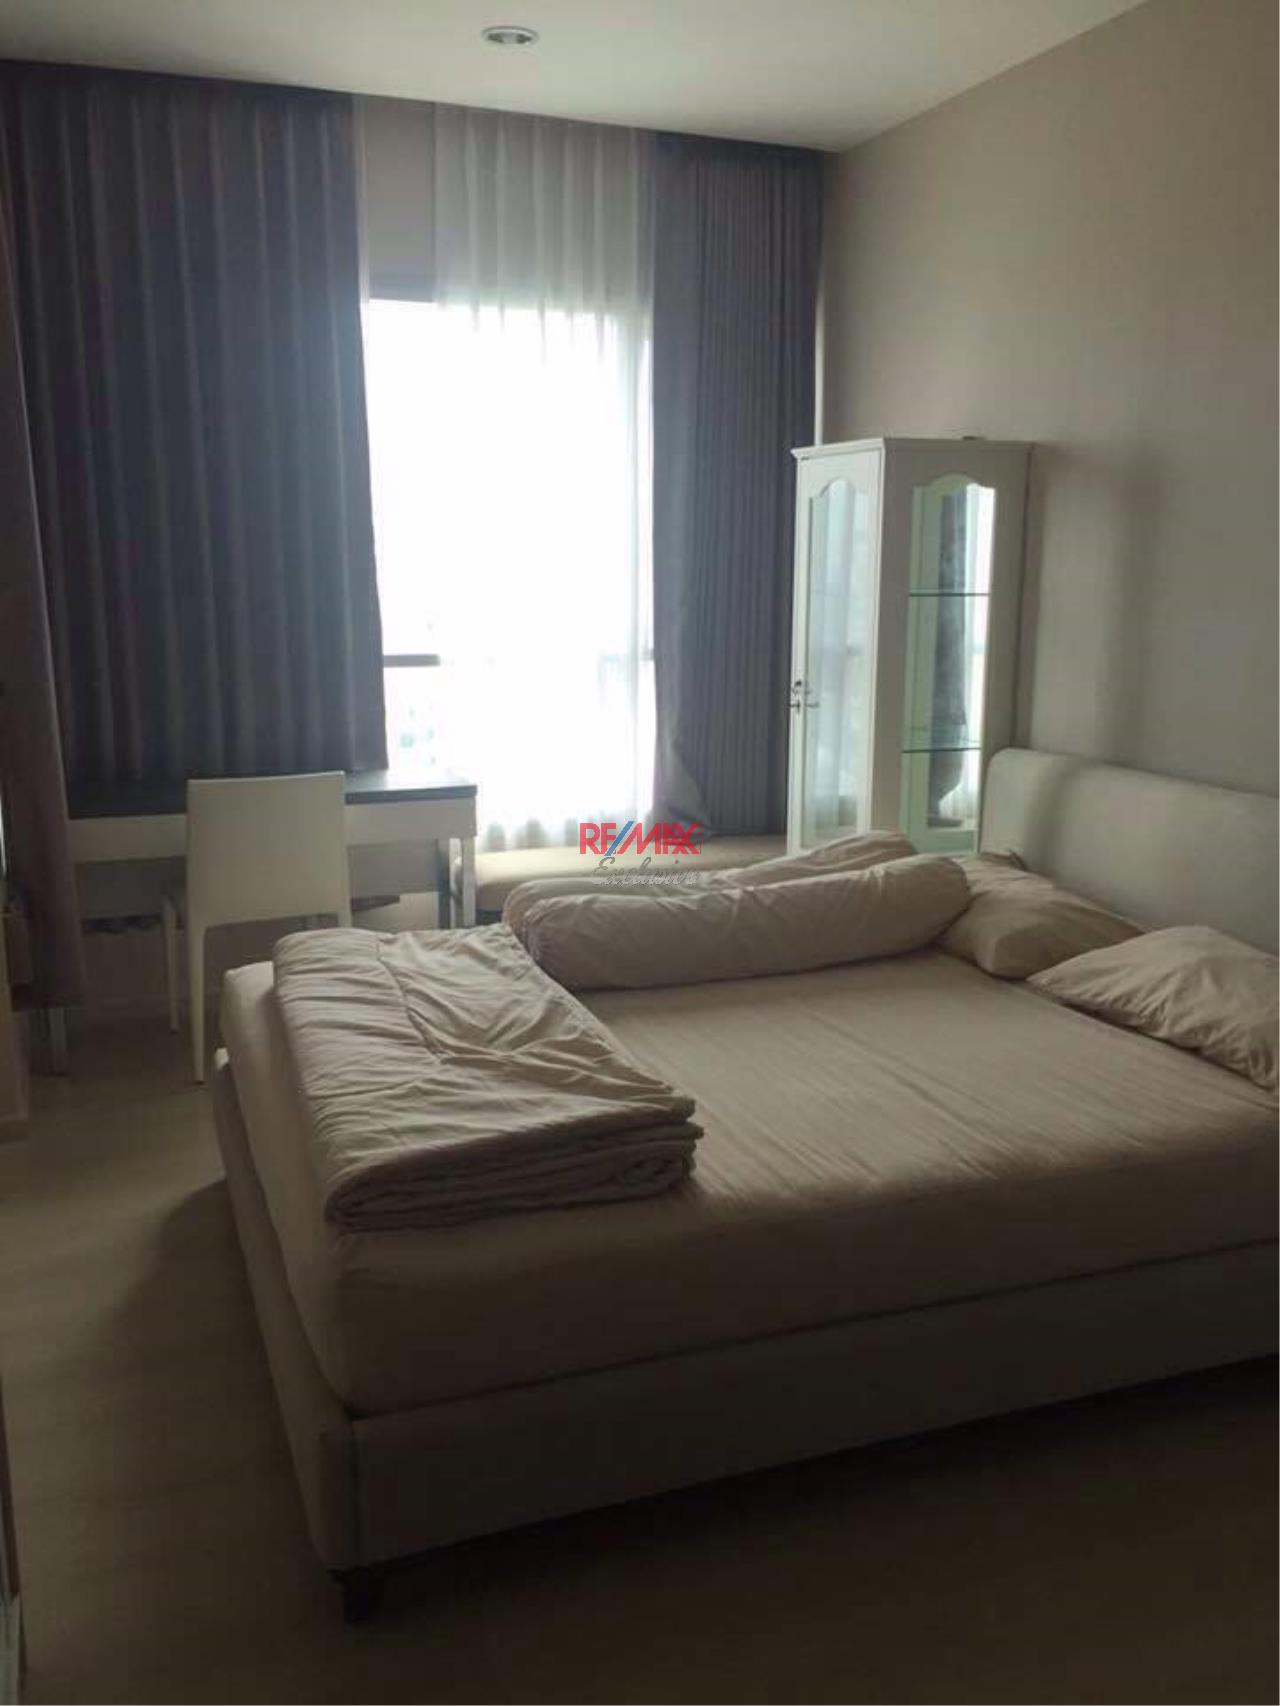 RE/MAX Exclusive Agency's Trendy 1 bedroom for sale @Life Ratchada - Huay Kwang 5